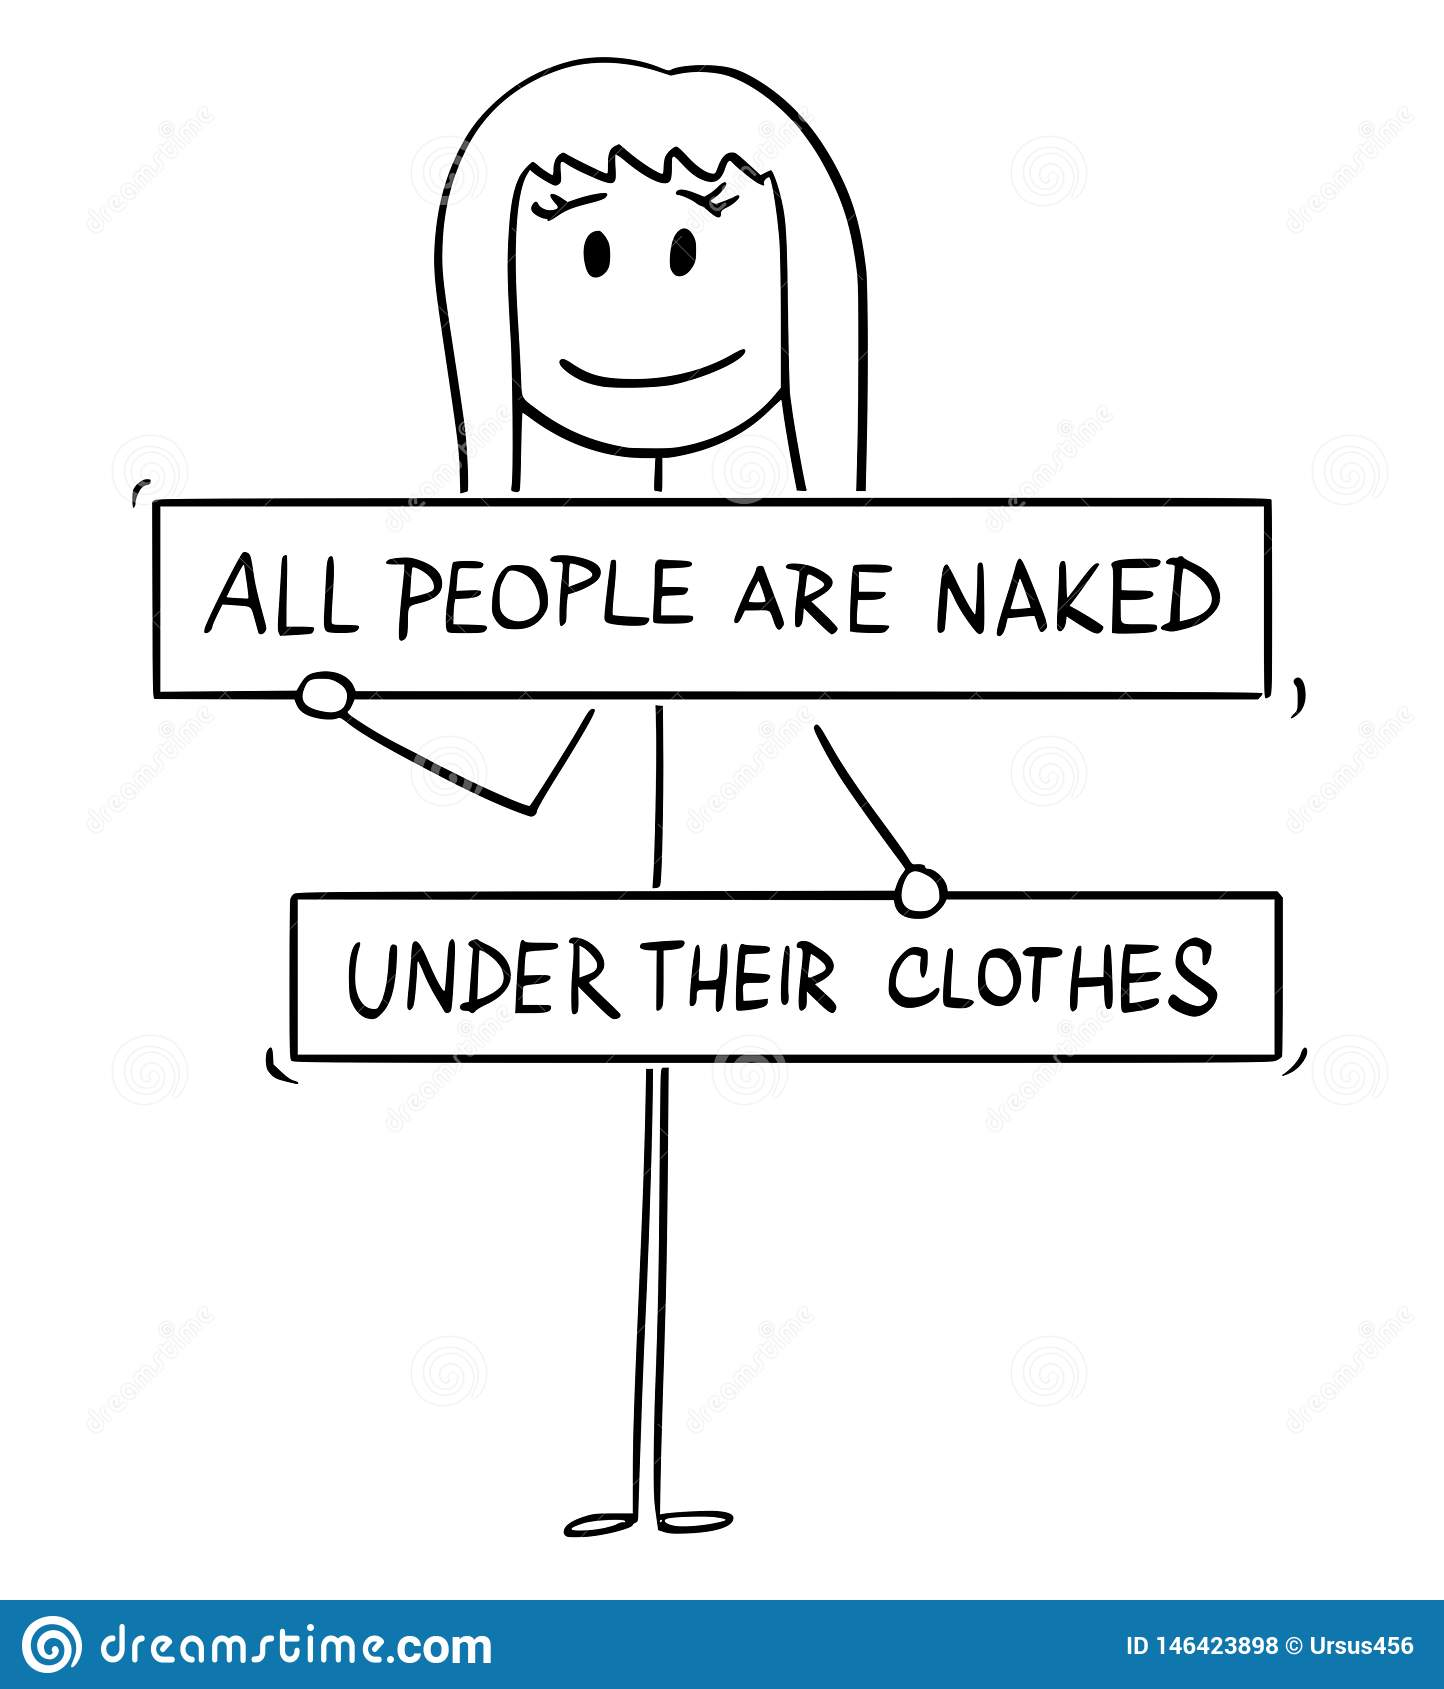 Cartoon of Nude Woman with Breasts, Groin, Crotch or Genitals Covered by All People Are Naked Under Their Clothes Sign